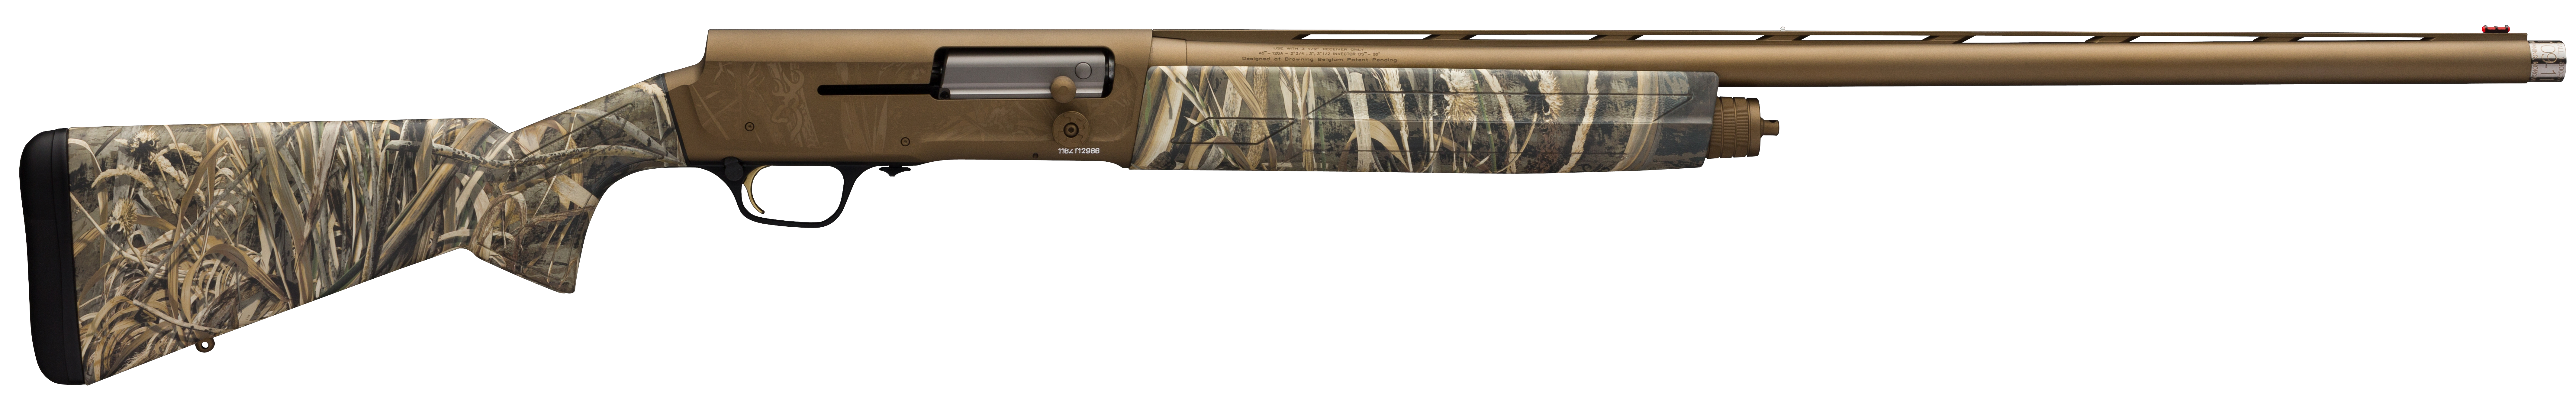 Browning A5 Wicked Wing Semi-Auto Shotgun 3.5'' 12 Gauge 26'' Burnt Bronze Cerakote - Synthetic - Realtree Max-5